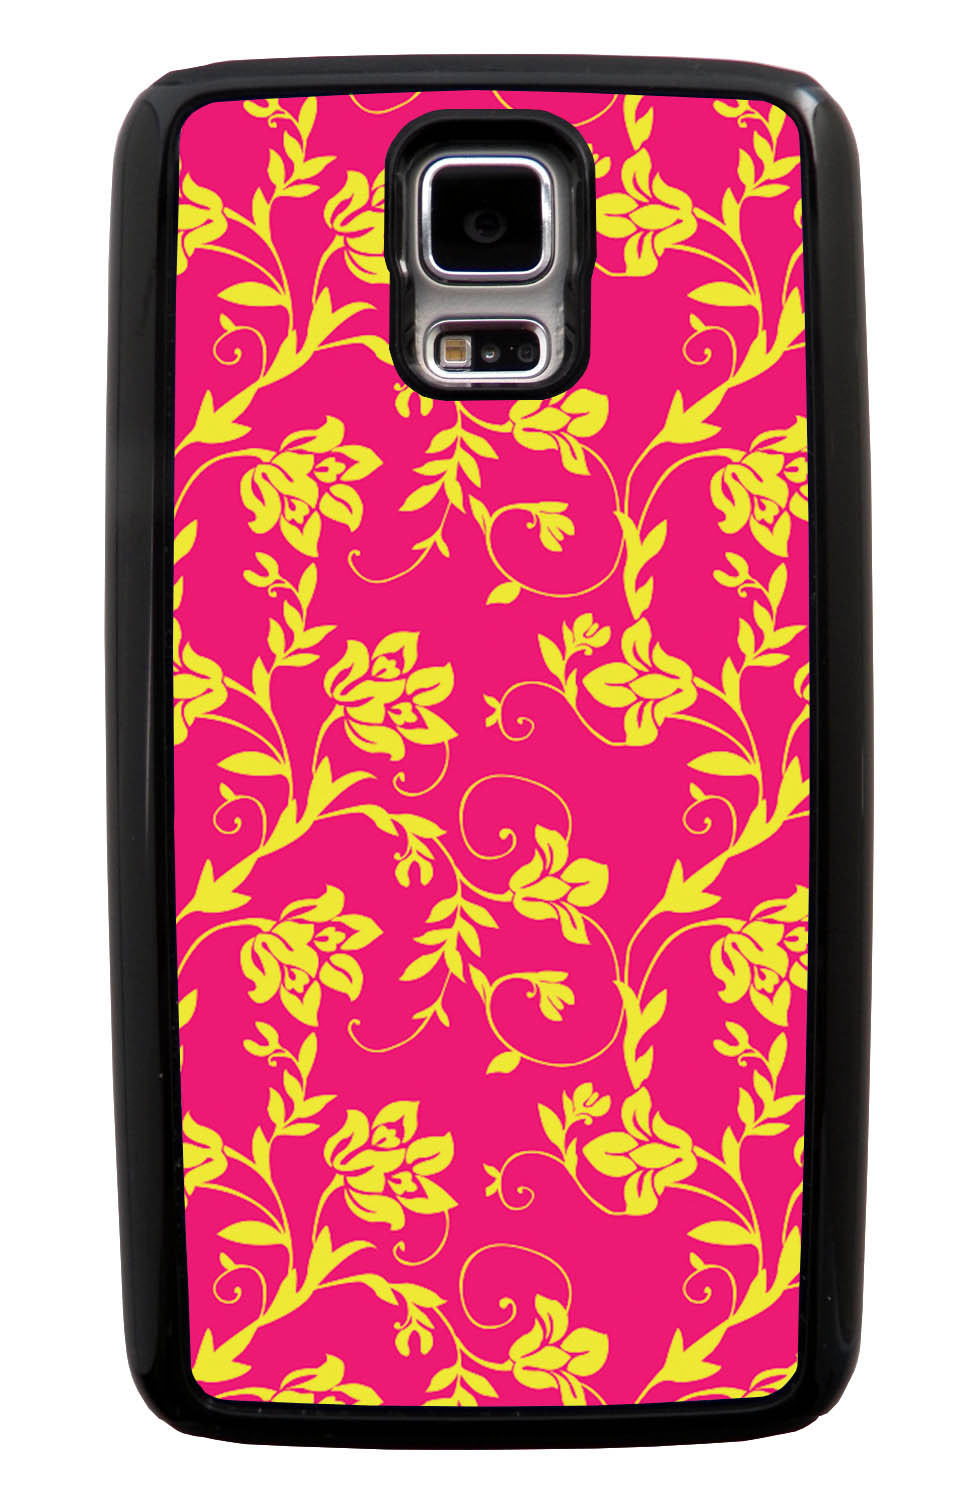 Samsung Galaxy S5 / SV Flower Case - Yellow on Hot Pink - Stencil Cutout - Black Tough Hybrid Case